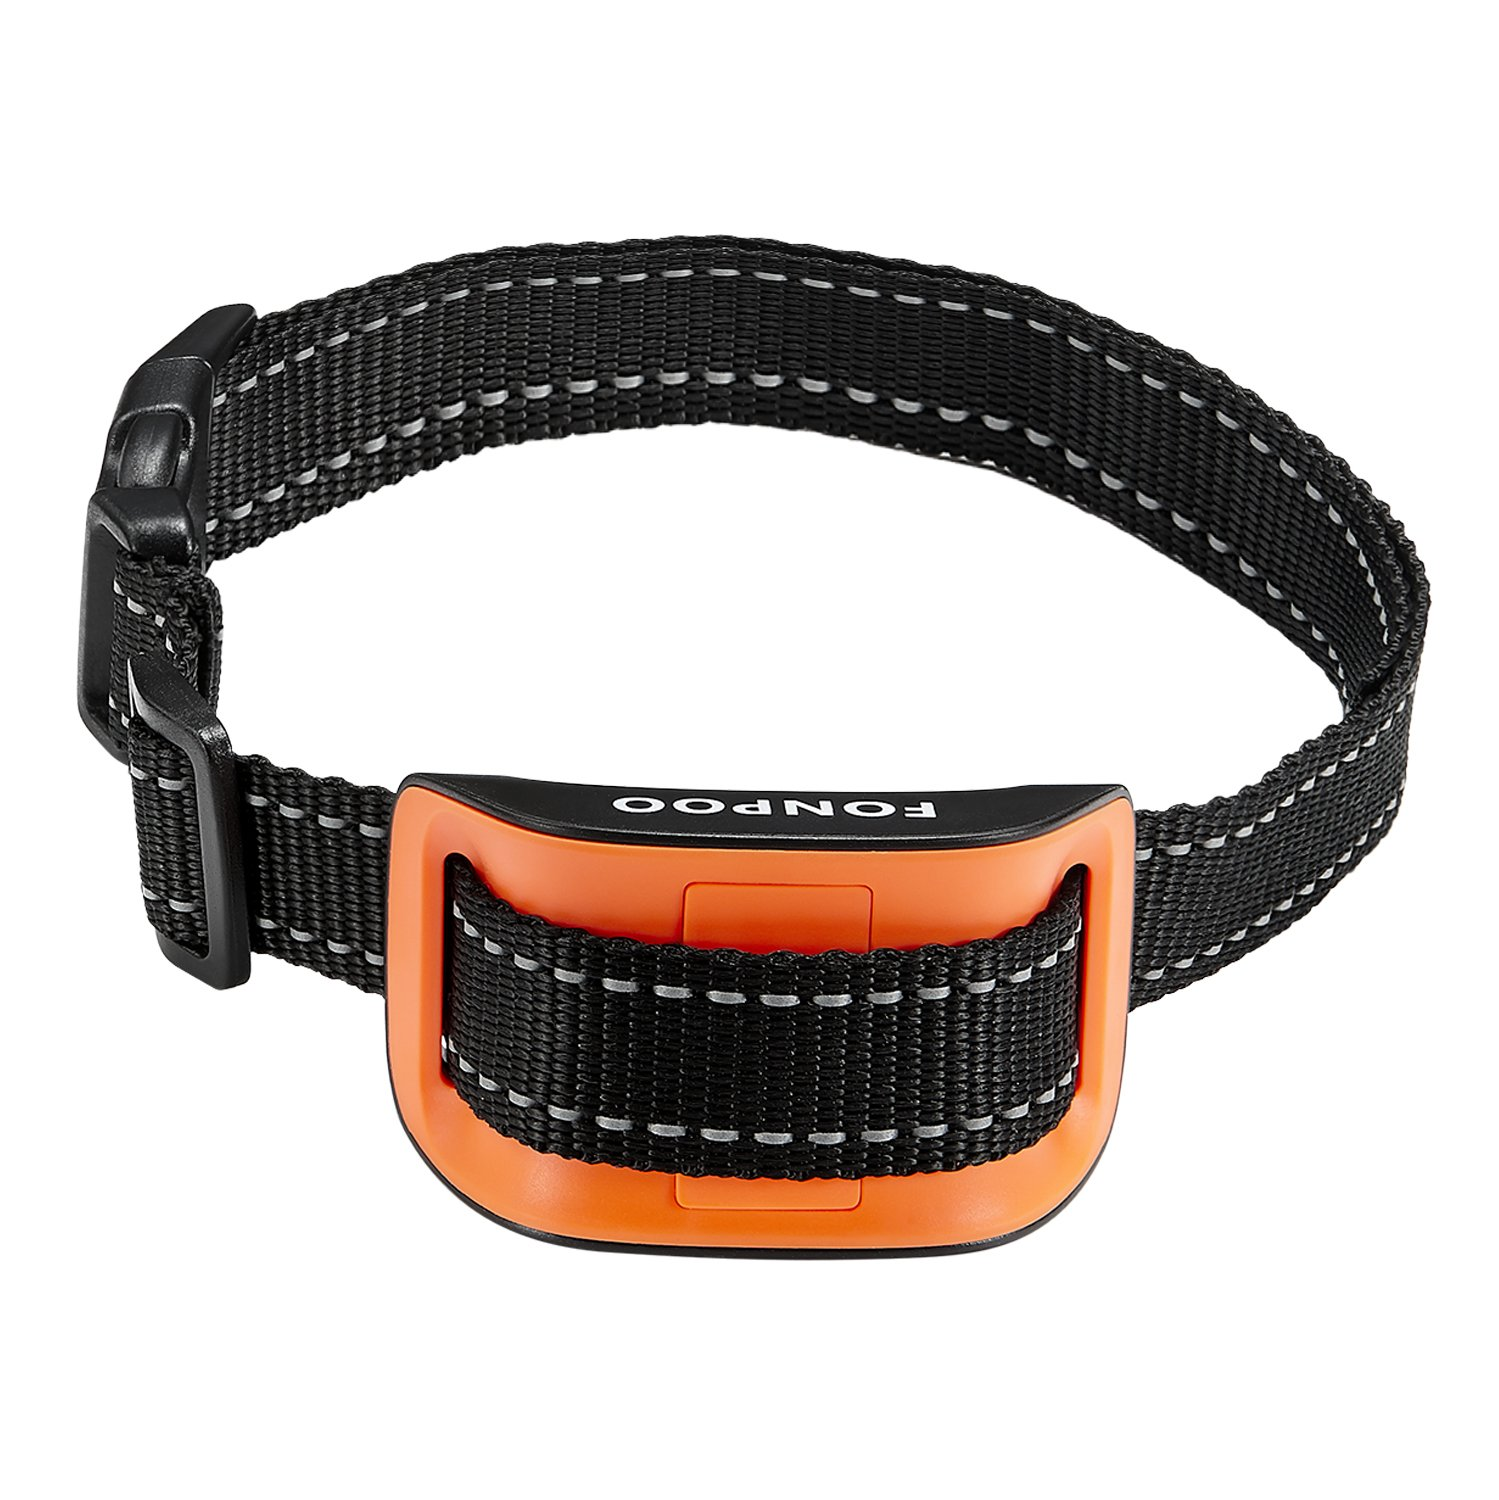 FONPOO FP-665S Dog No Bark Collar for Bark Control with Harmless Warning Soun